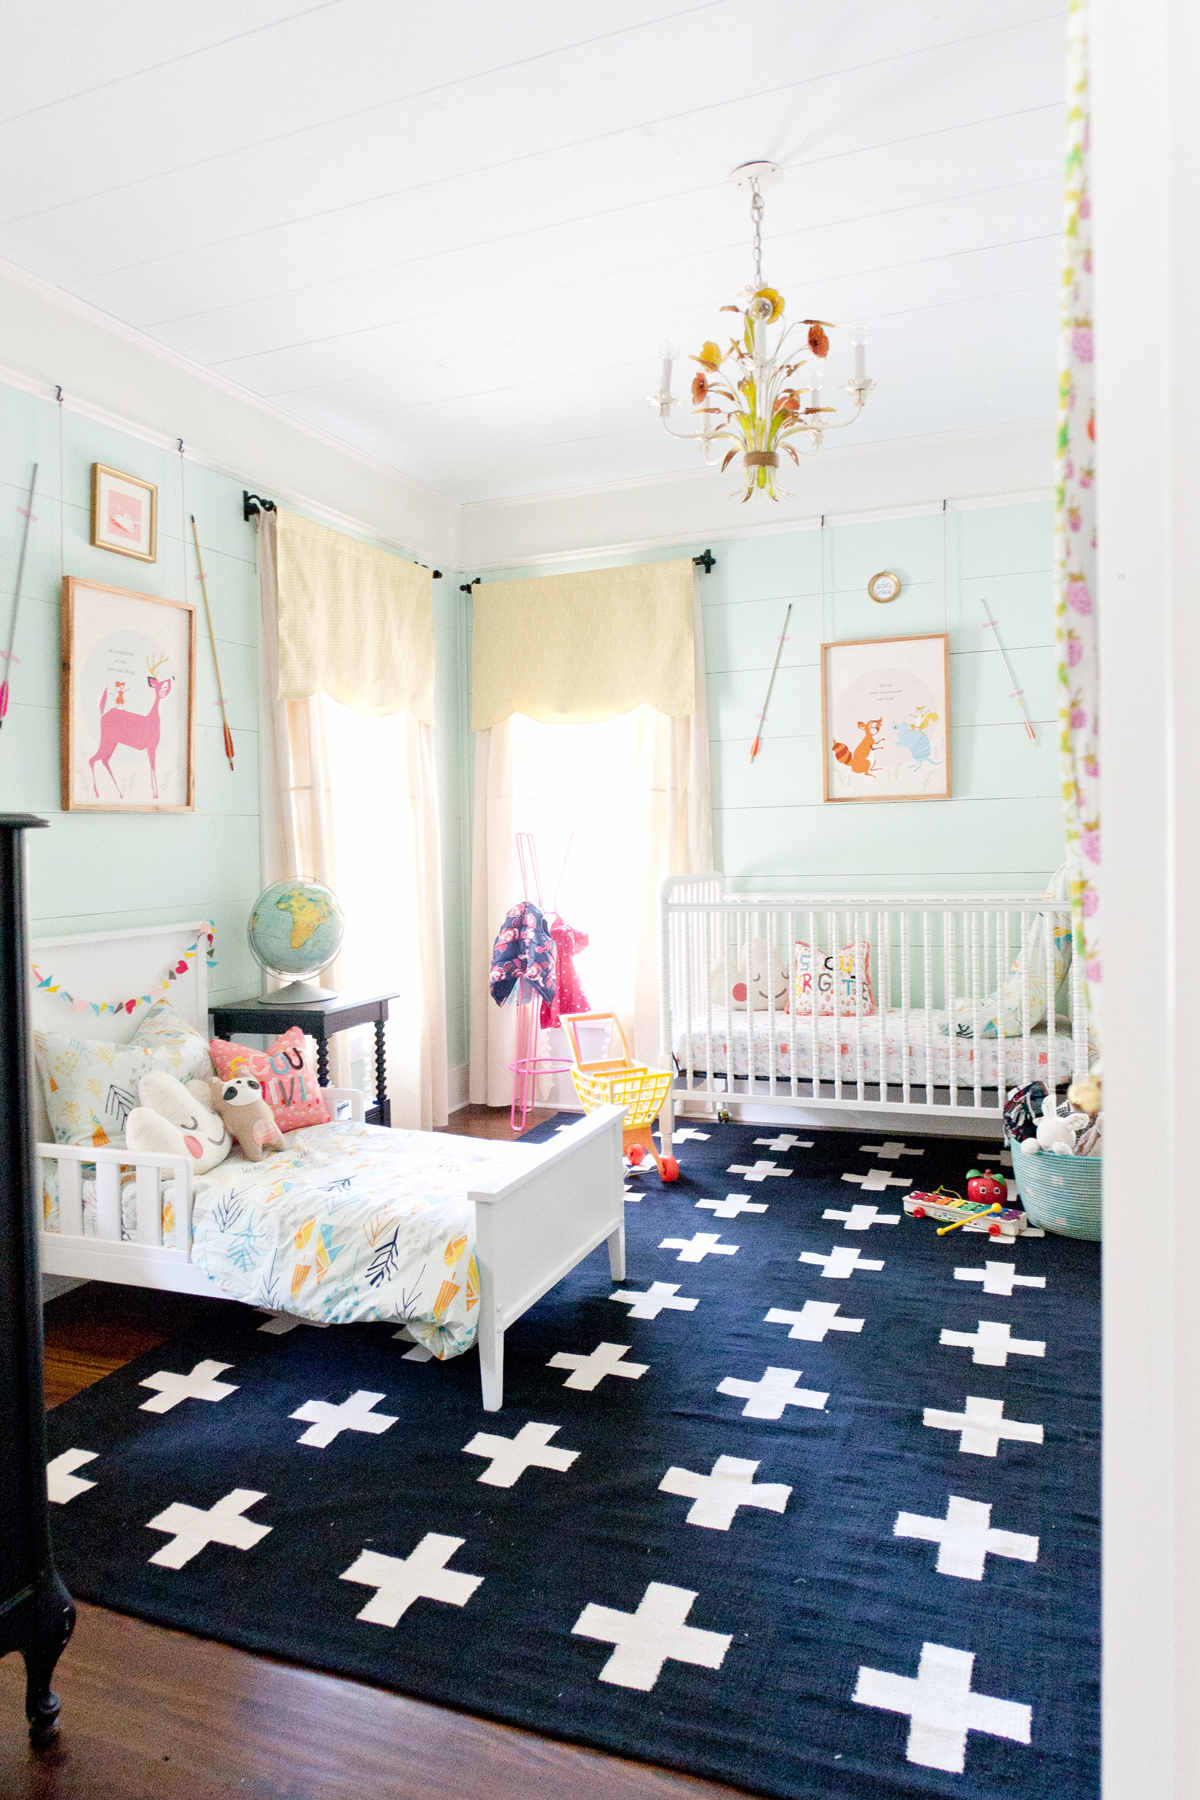 Shared room inspiration lay baby lay lay baby lay for Bedroom inspiration apartment therapy